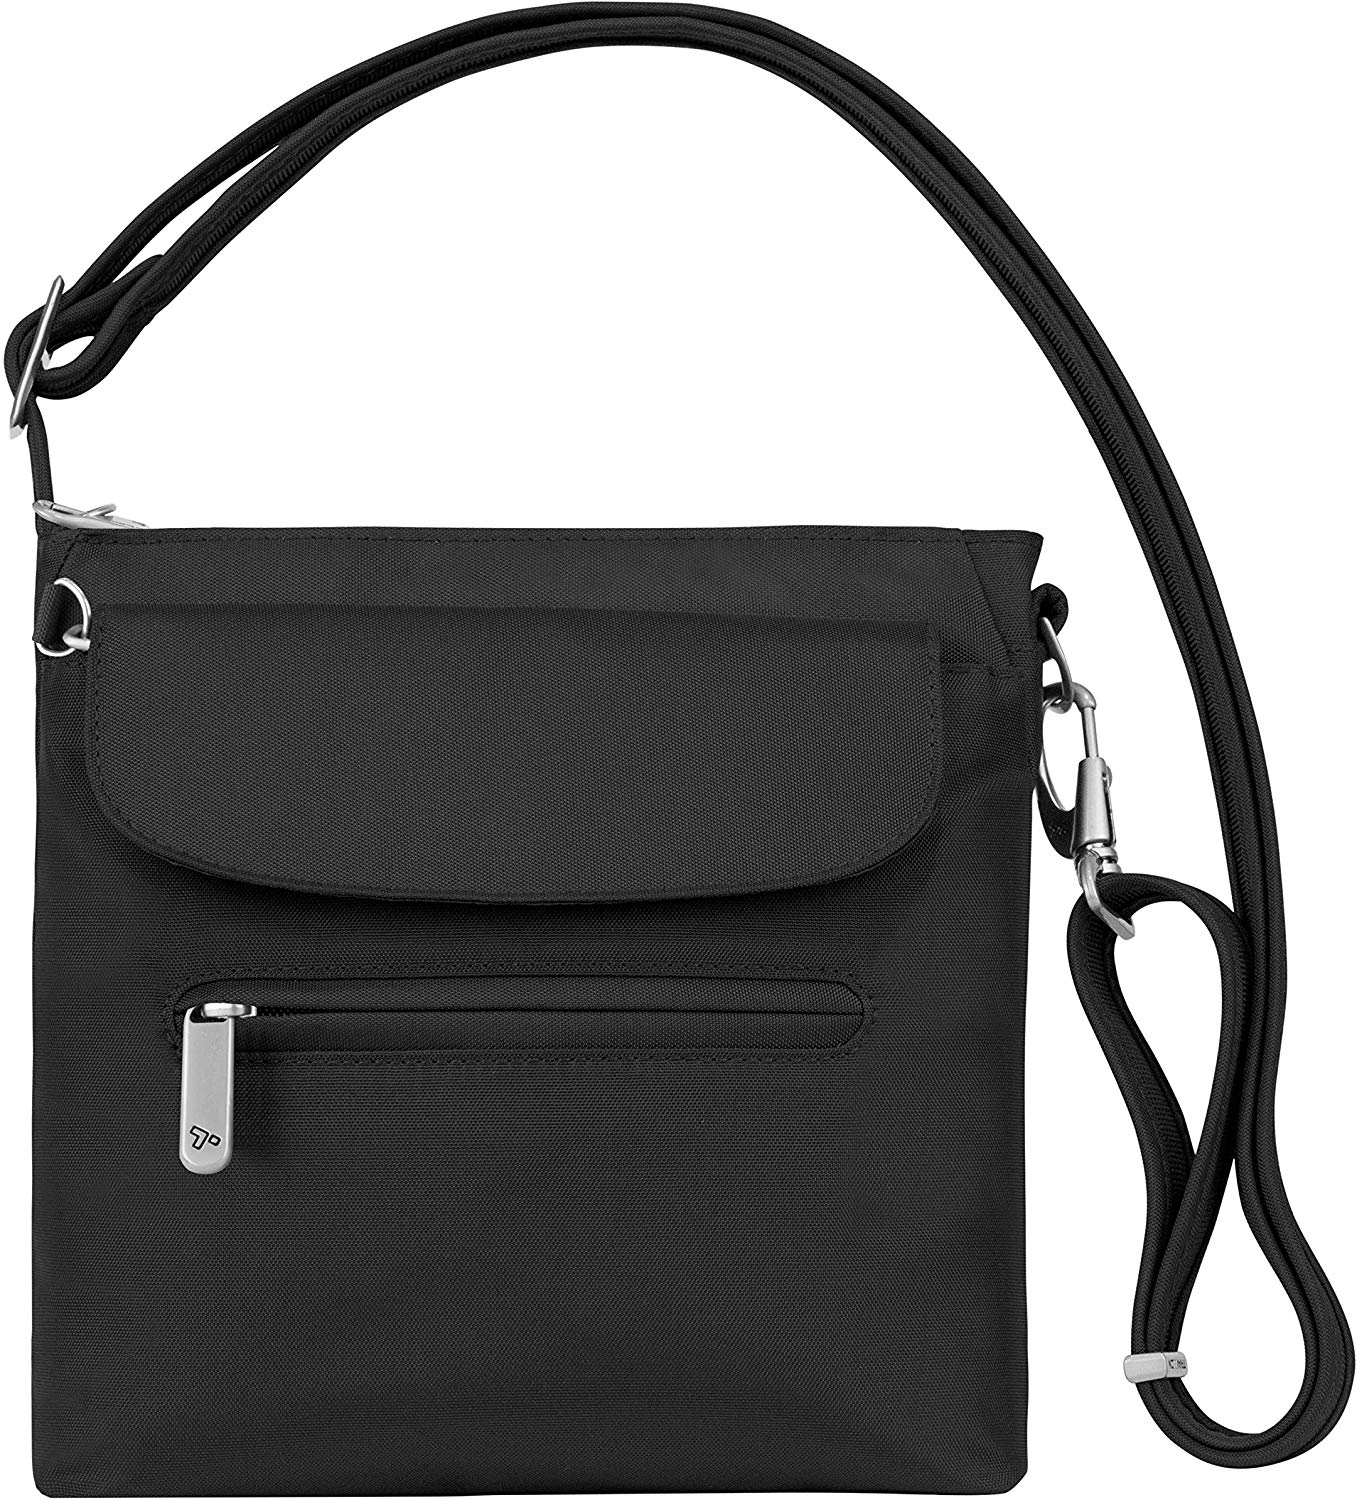 Travelon Anti-Theft Classic Mini Shoulder Bag - Crossbody bag For Women